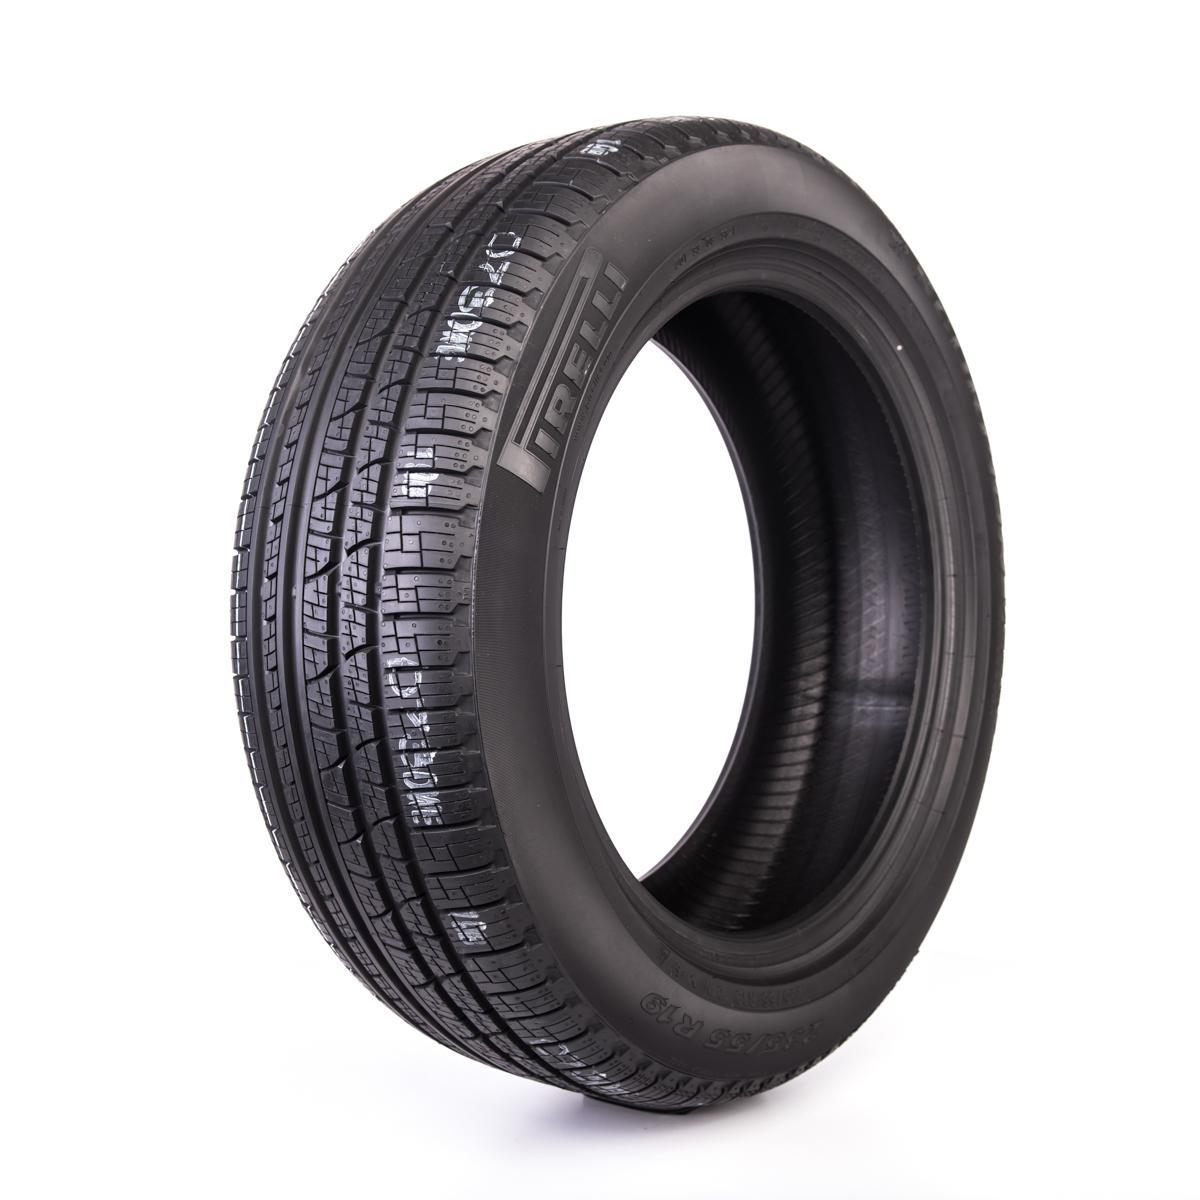 Pirelli, SCORPION VERDE AS Allseason 3877000PIR